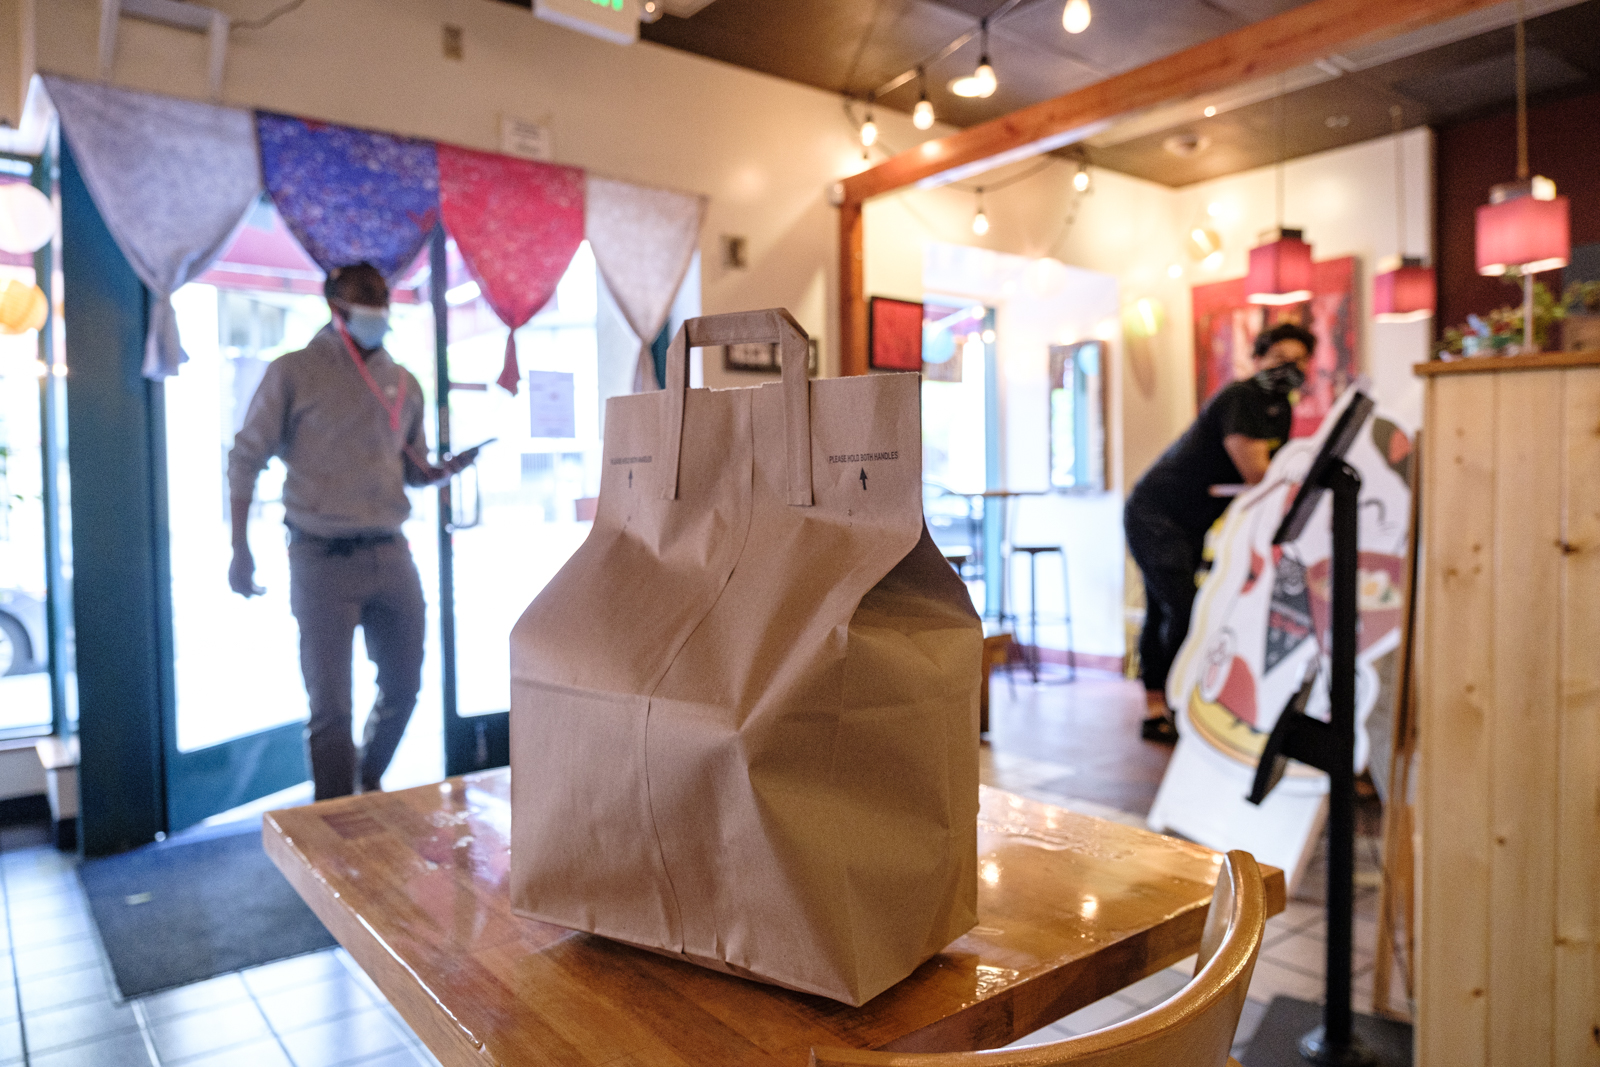 takeout order on table, food delivery